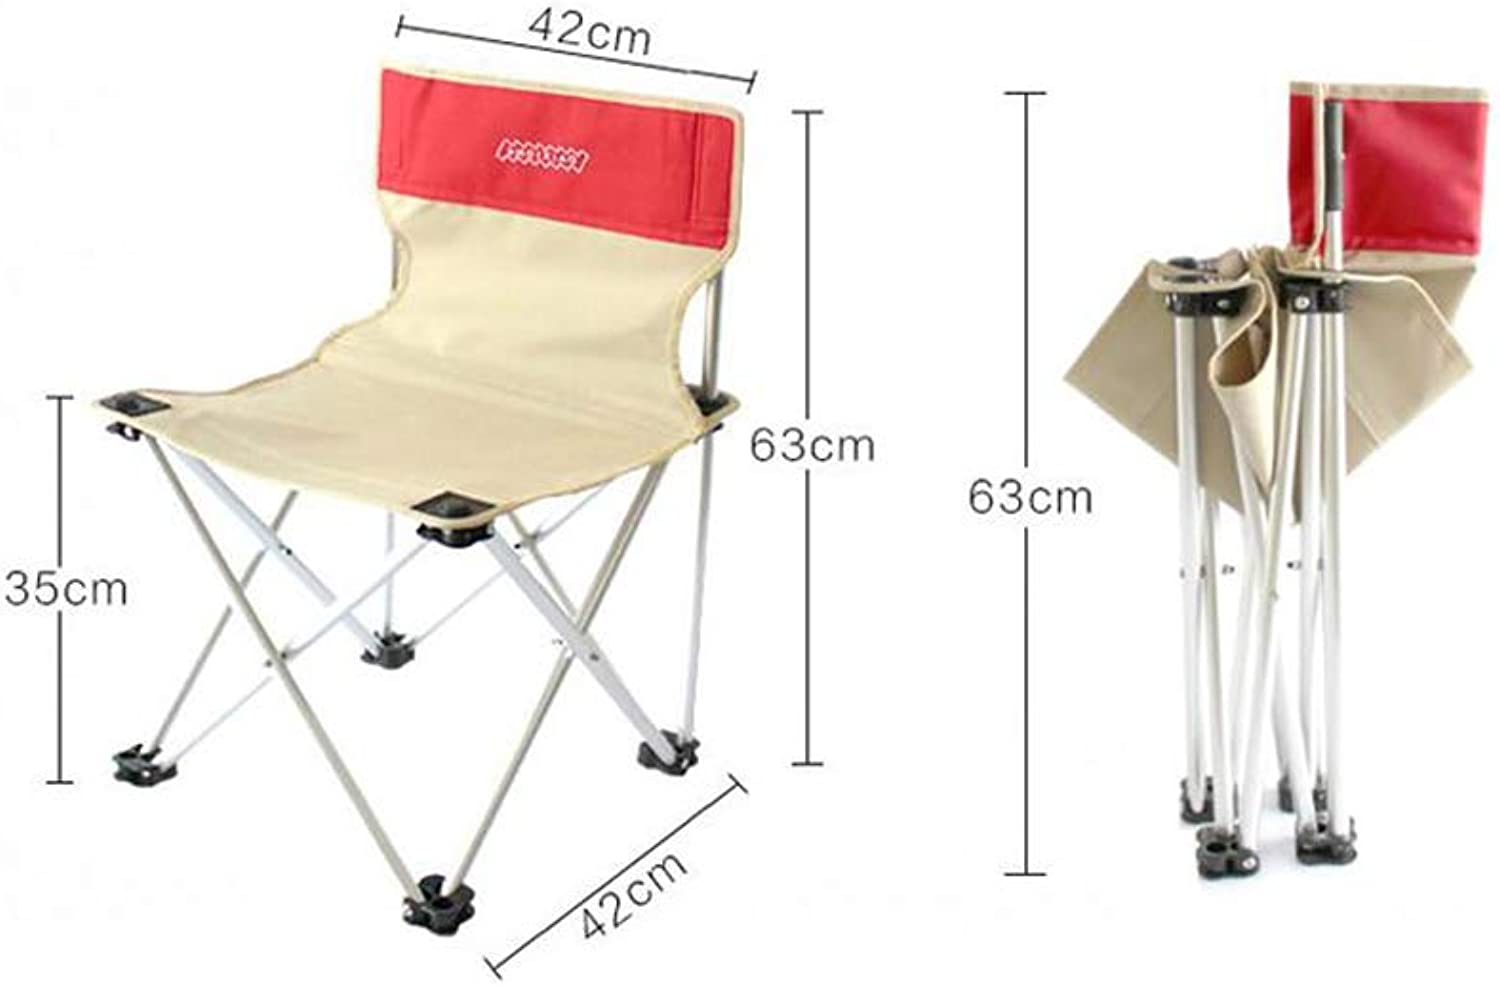 Folding Chairs Fishing Chair Stool Camping Multipurpose Aluminum Alloy Oxford Cloth Backrest Waterproof Lightweight Portable Outdoor Beach Chair,B